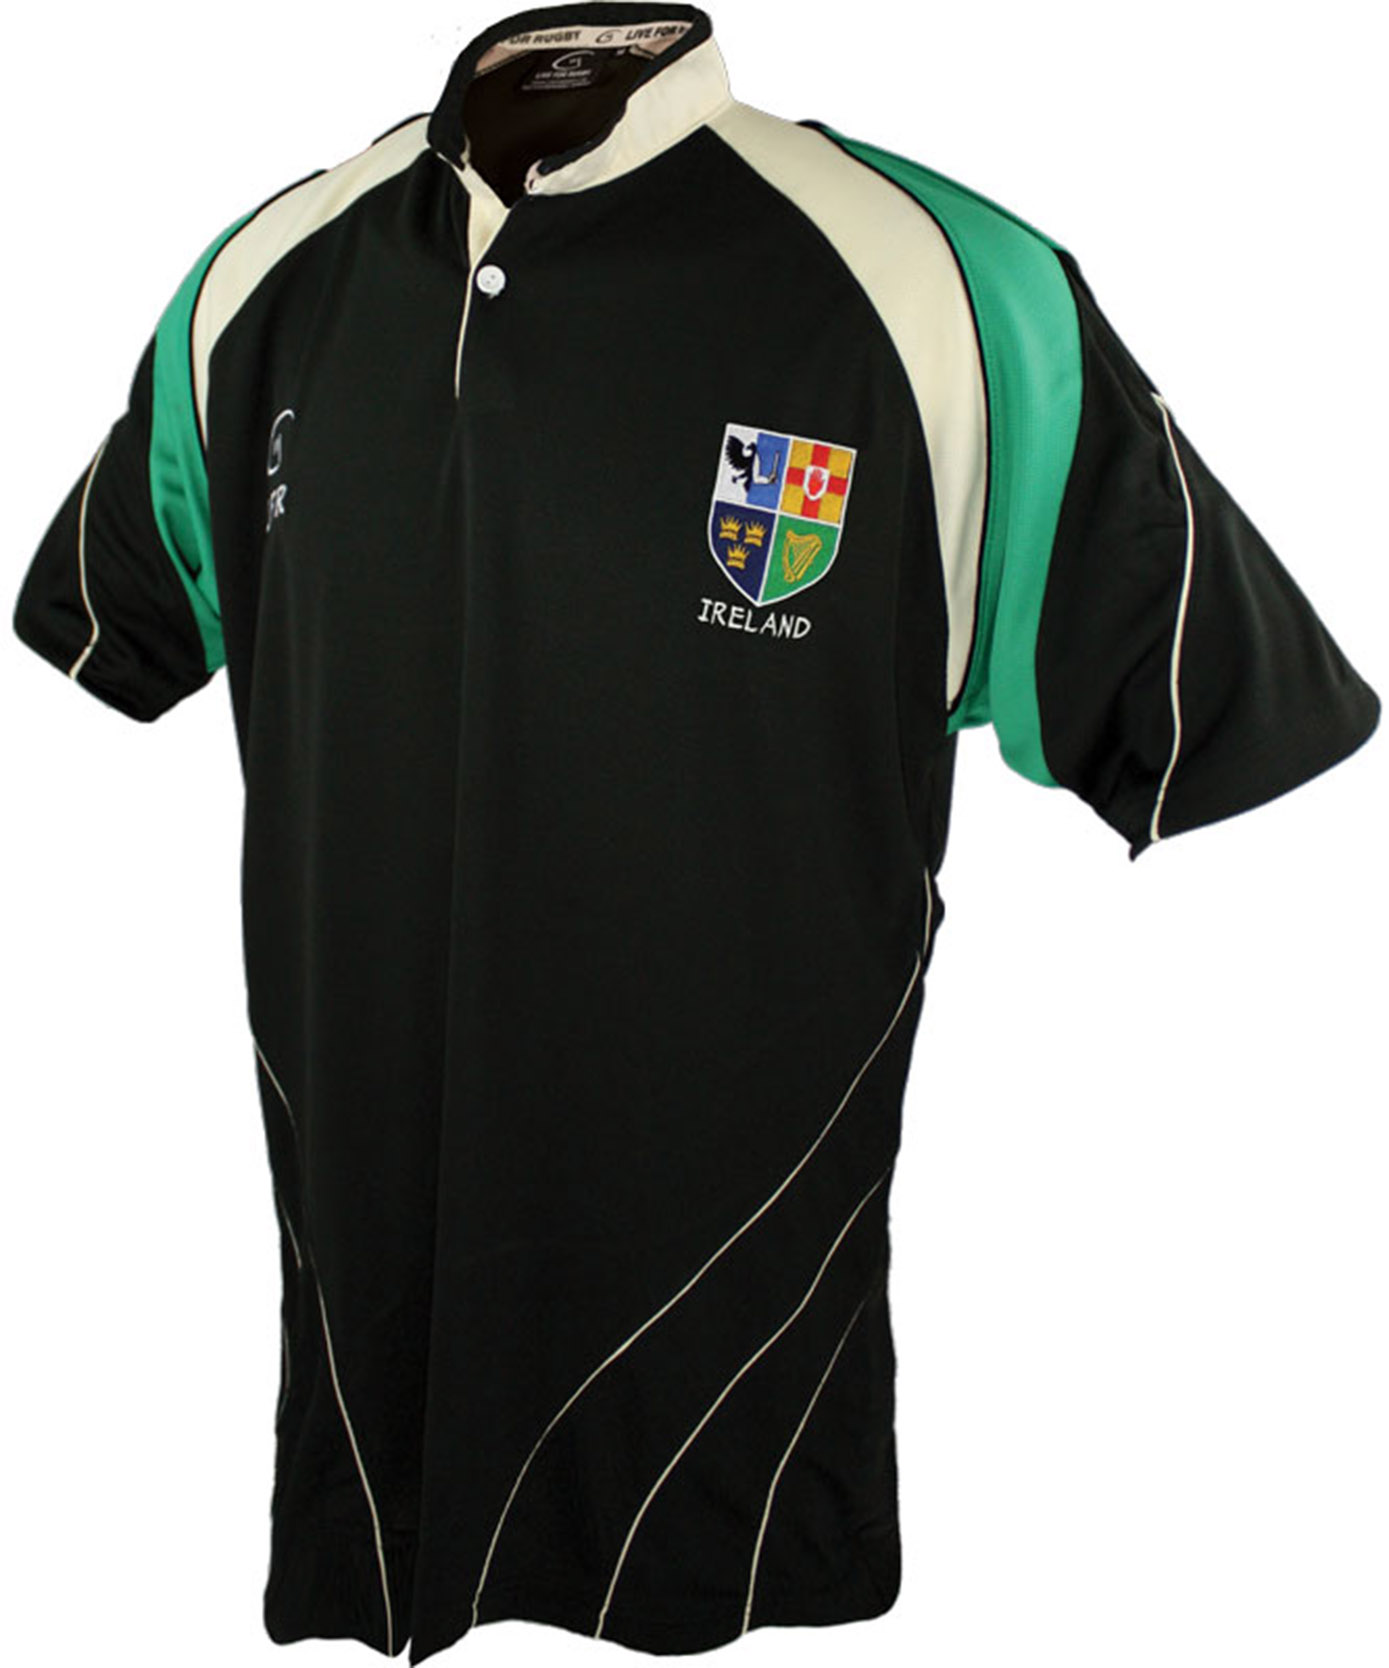 Ireland Four Provinces Breathable Rugby Shirt OLIVE (XS-XXXL) - Click Image to Close